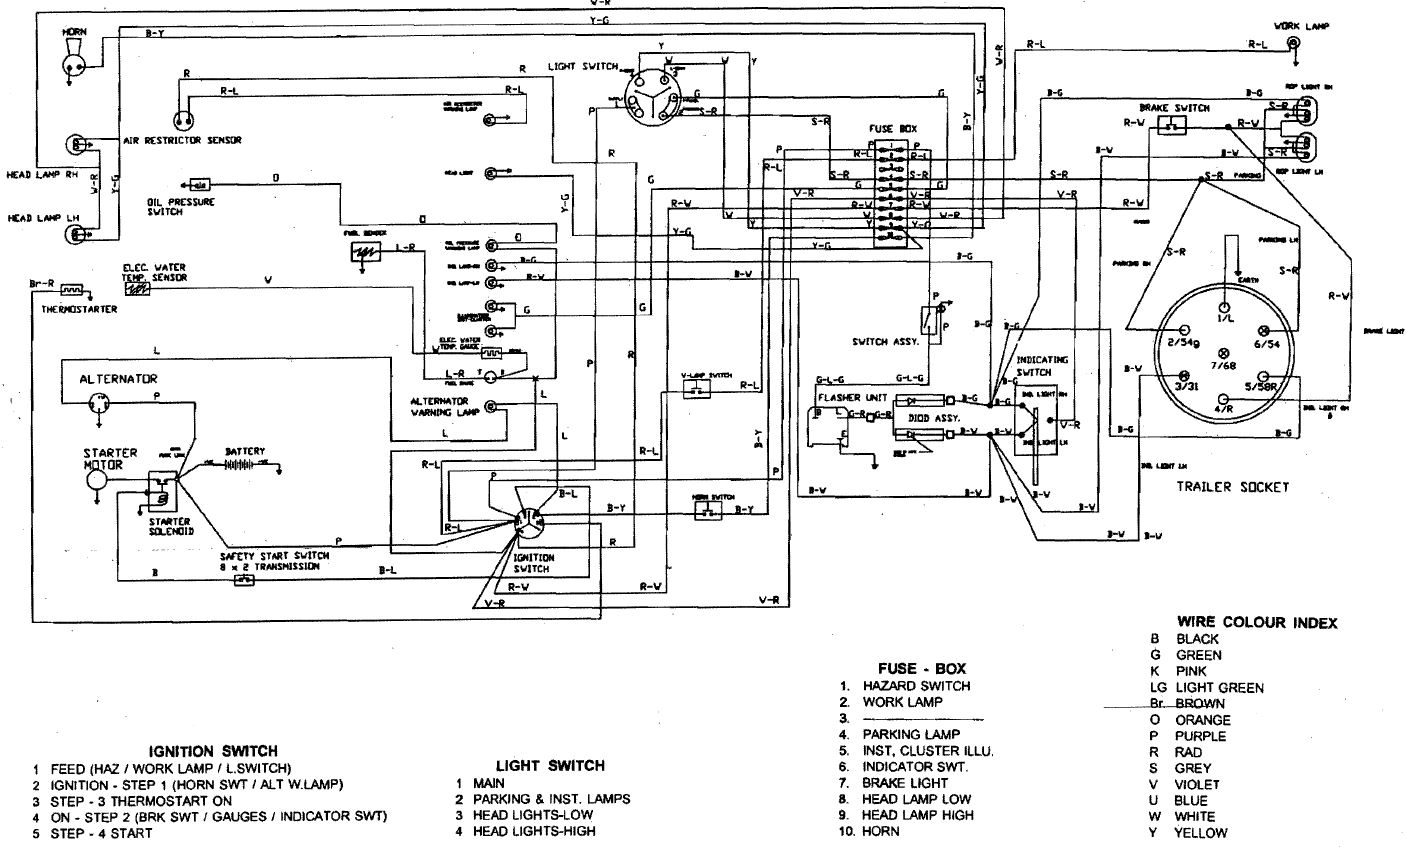 20158463319_b82d524c3d_o ignition switch wiring diagram lawn mower switch wiring diagram at soozxer.org